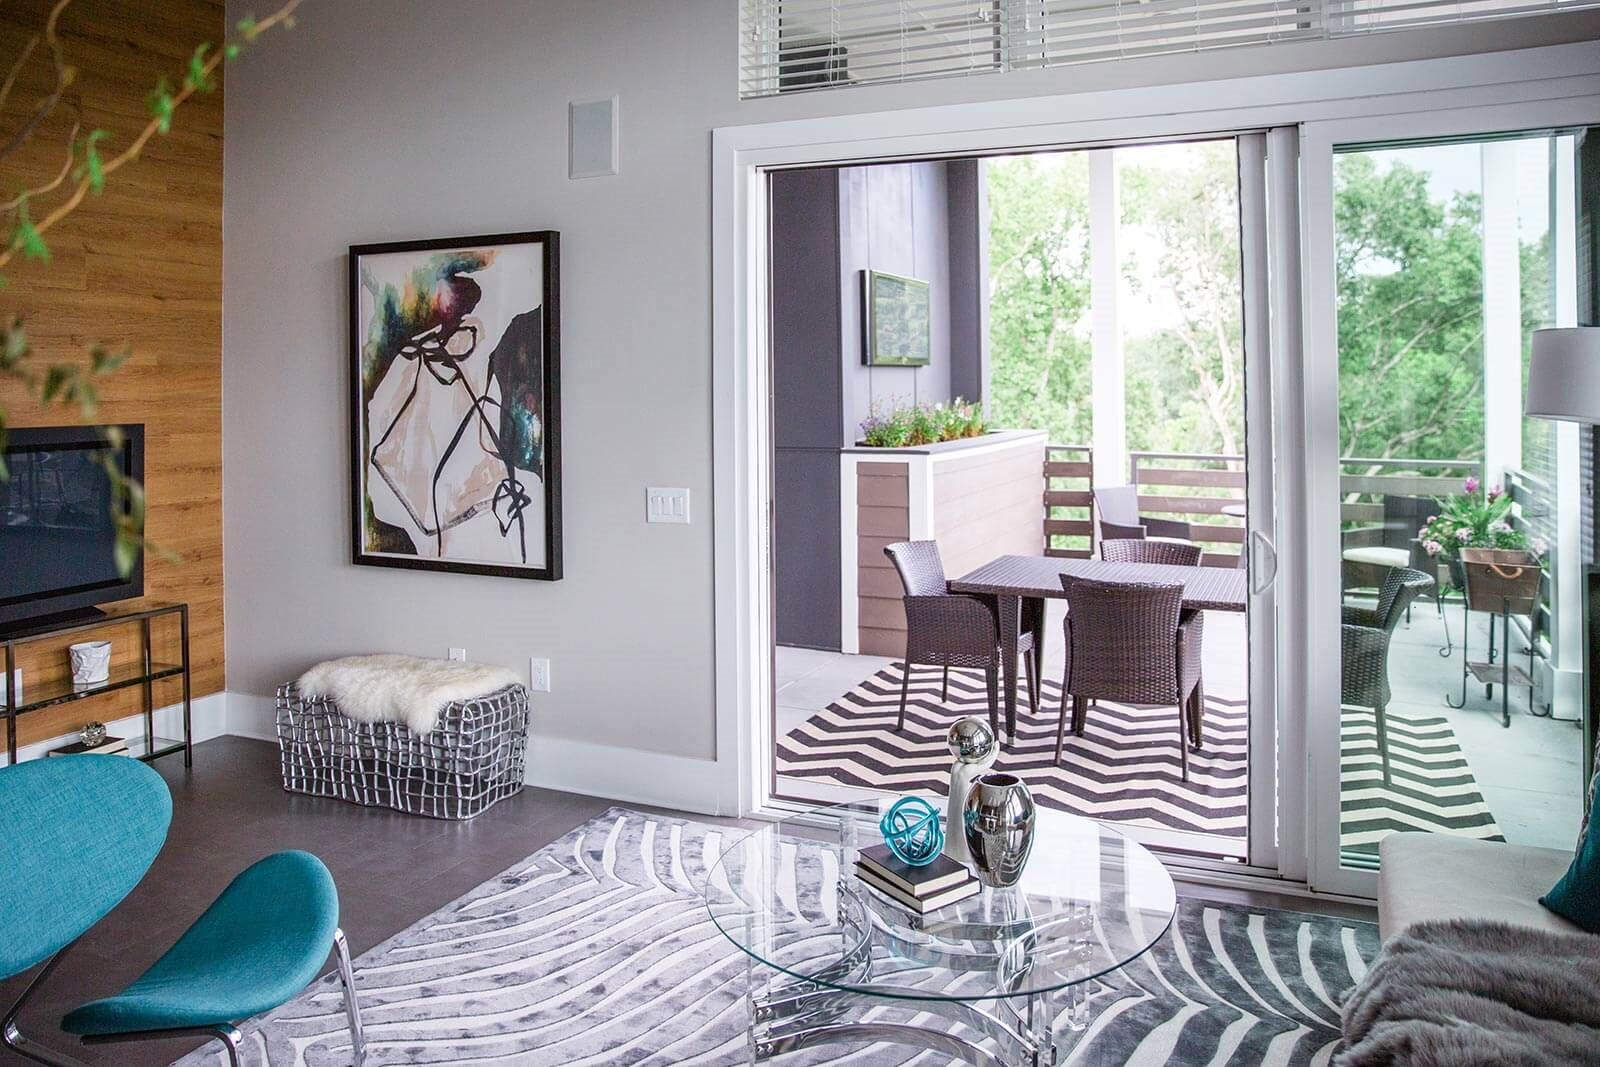 Glass Doors Creates A Flowing Living Space at Morningside Atlanta by Windsor, 30324, GA